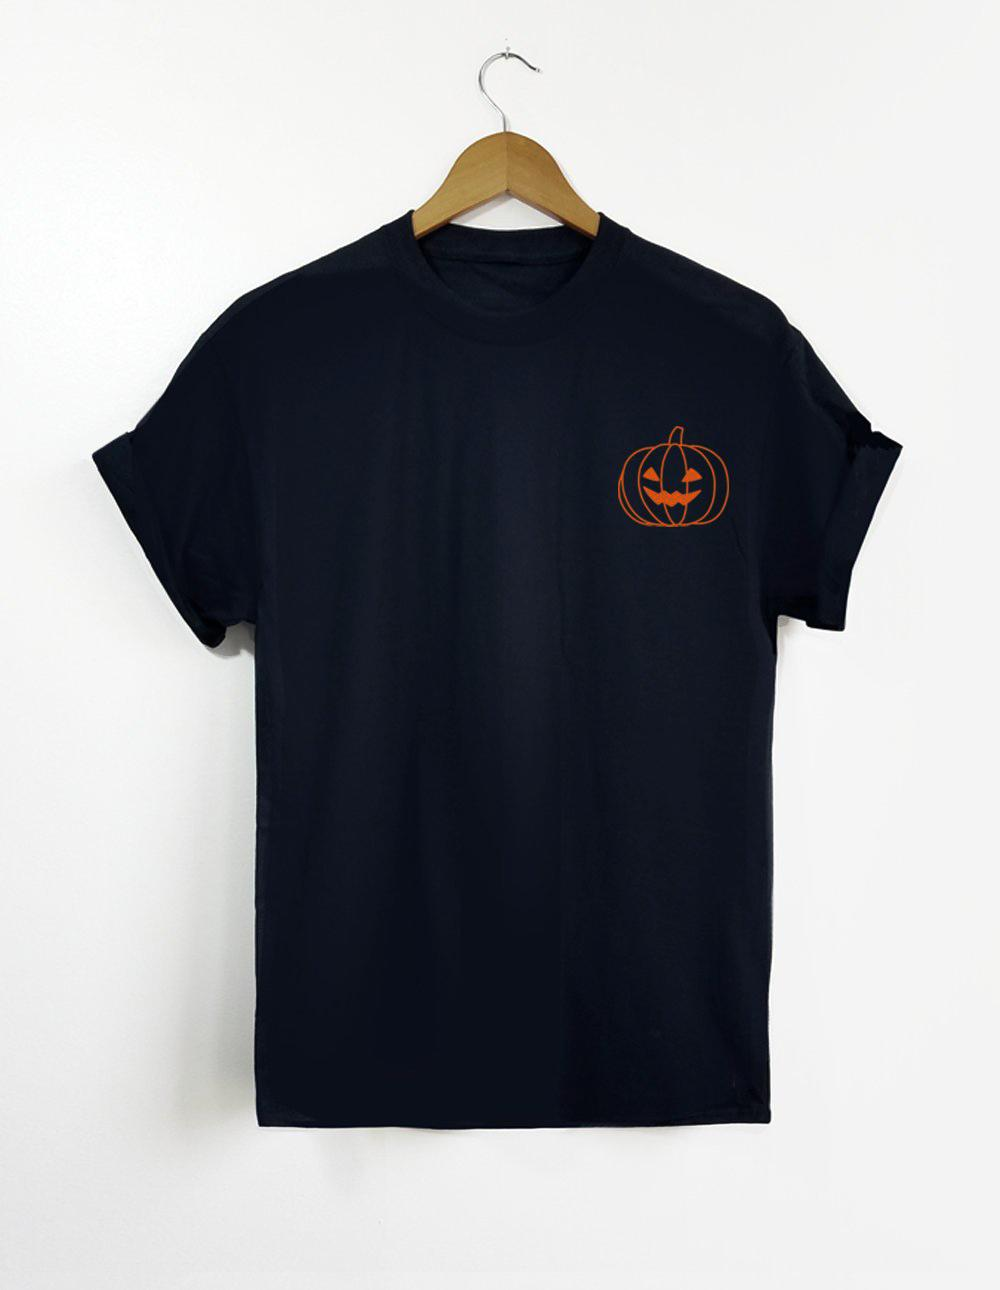 08ad0fa948f2f Women's Tee Halloween Pumpkin Pocket T-shirt Family Halloween Party Tee  Casual Style Grunge Simple Cotton Tops Black Clothes Outfits Shirts